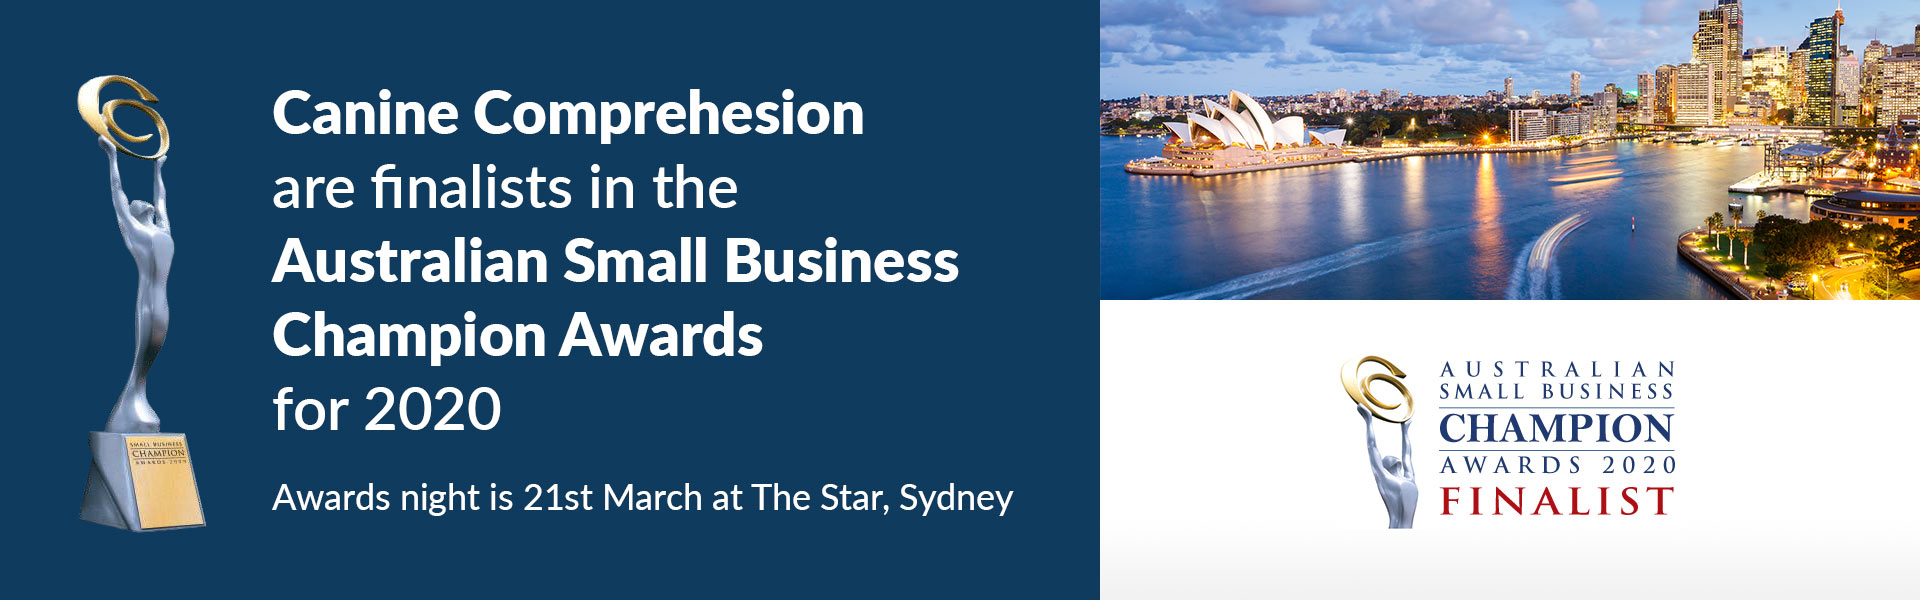 Canine Comprehesion are finalists in the Australian Small Business Champion Awards for 2020. Awards night is 21st March at The Star, Sydney